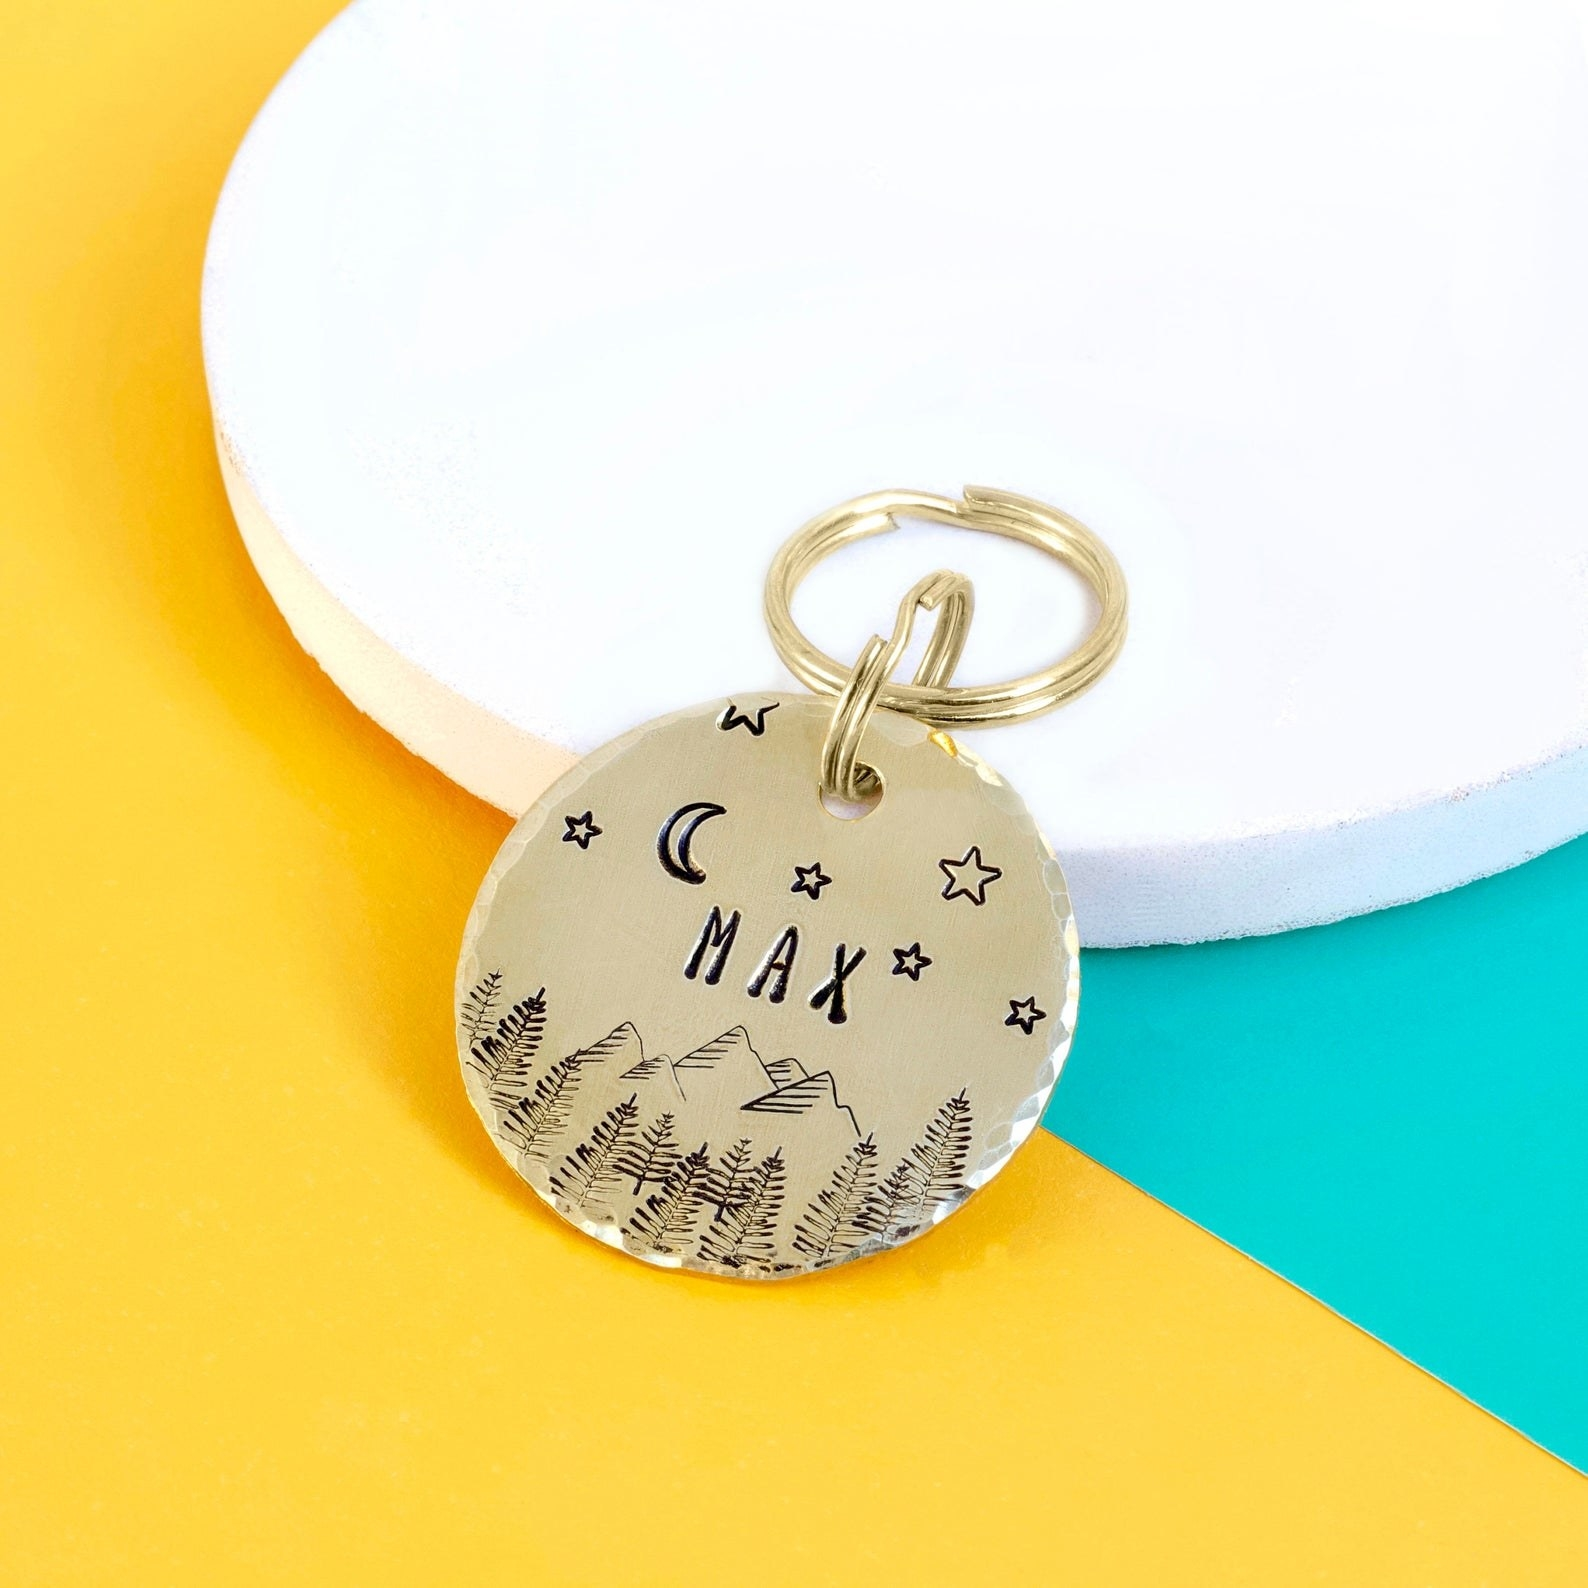 a gold dog tag with stars and mountains and trees on it